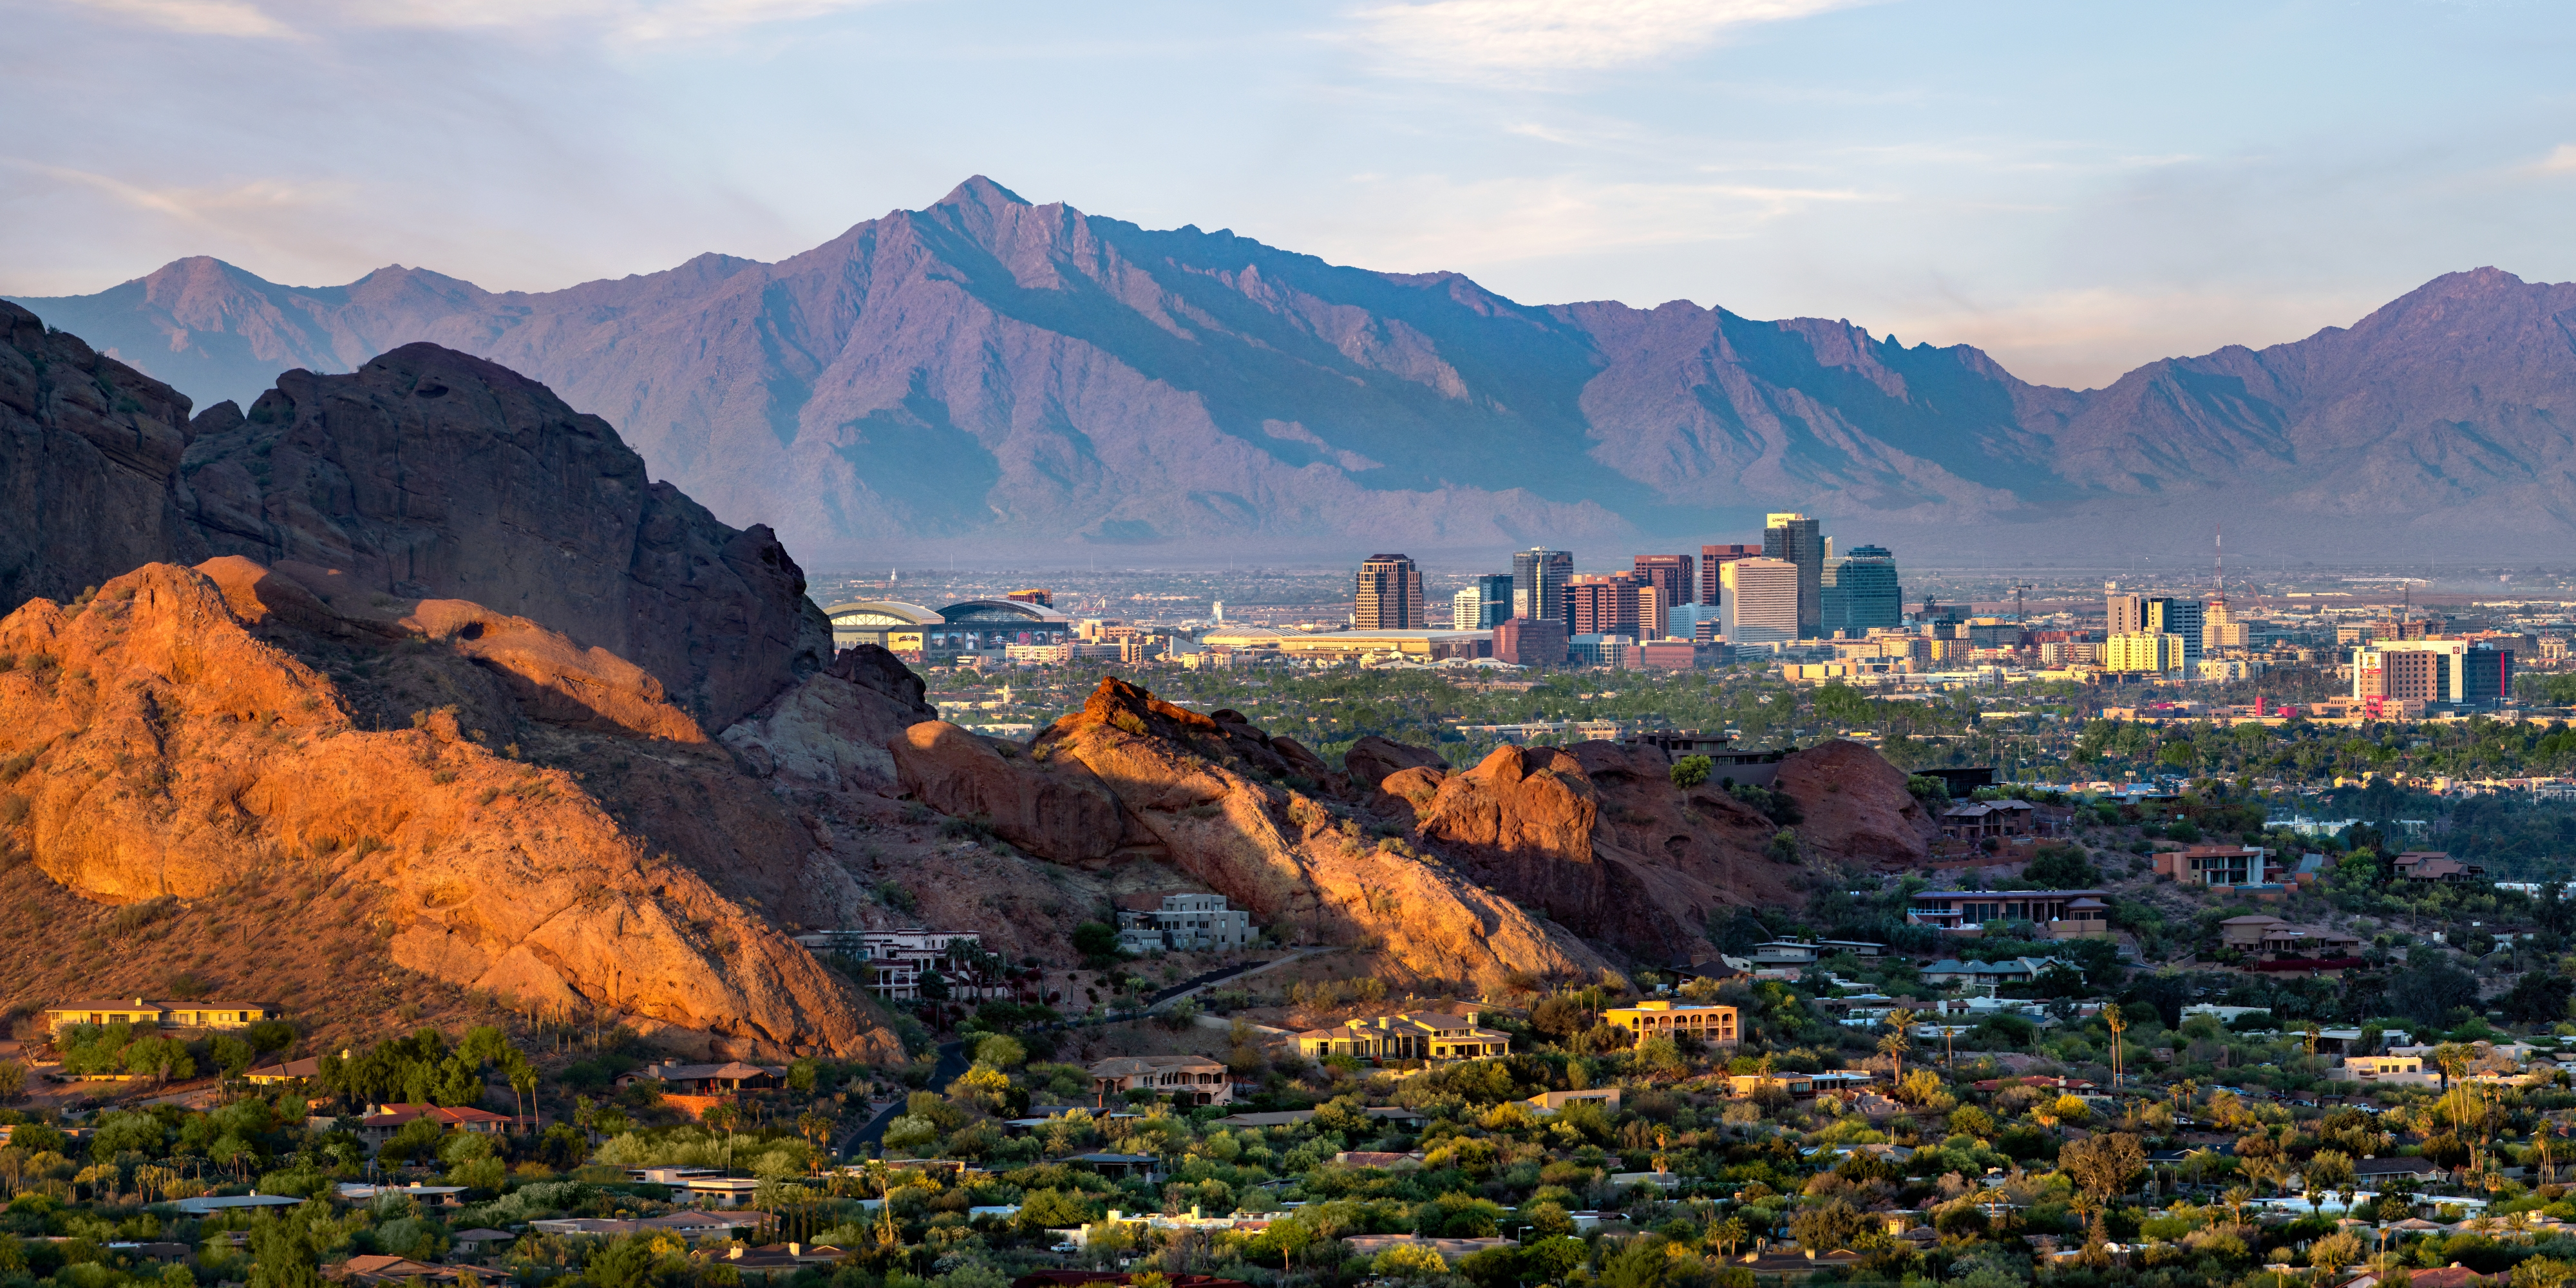 Site Selection Group Locates 300-Employee Call Center Facility in Phoenix, Arizona